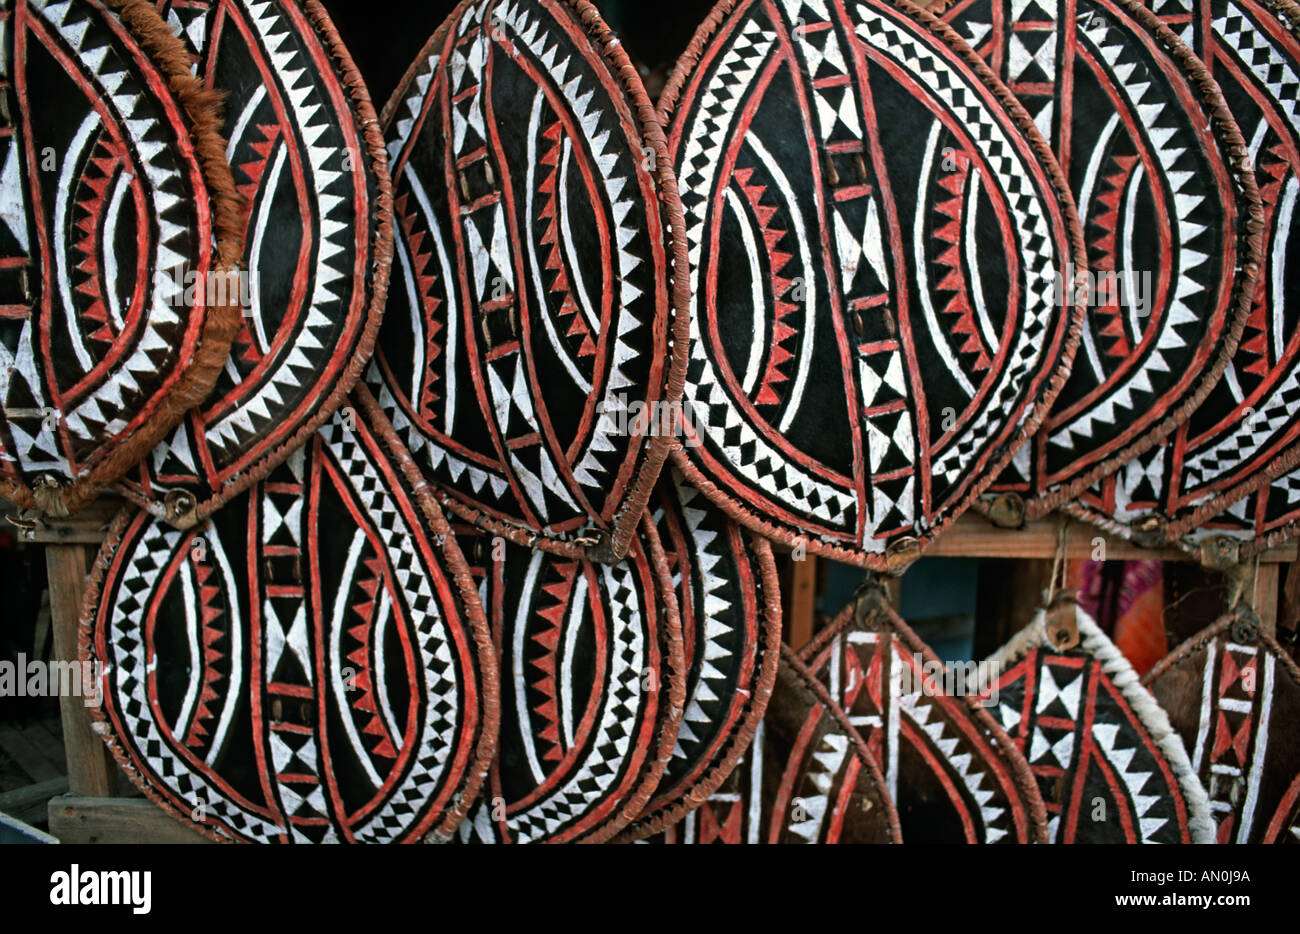 Selection of Masai shields made from hide and painted with geometric motifs sold as souvenirs on a market stall Tanzania - Stock Image